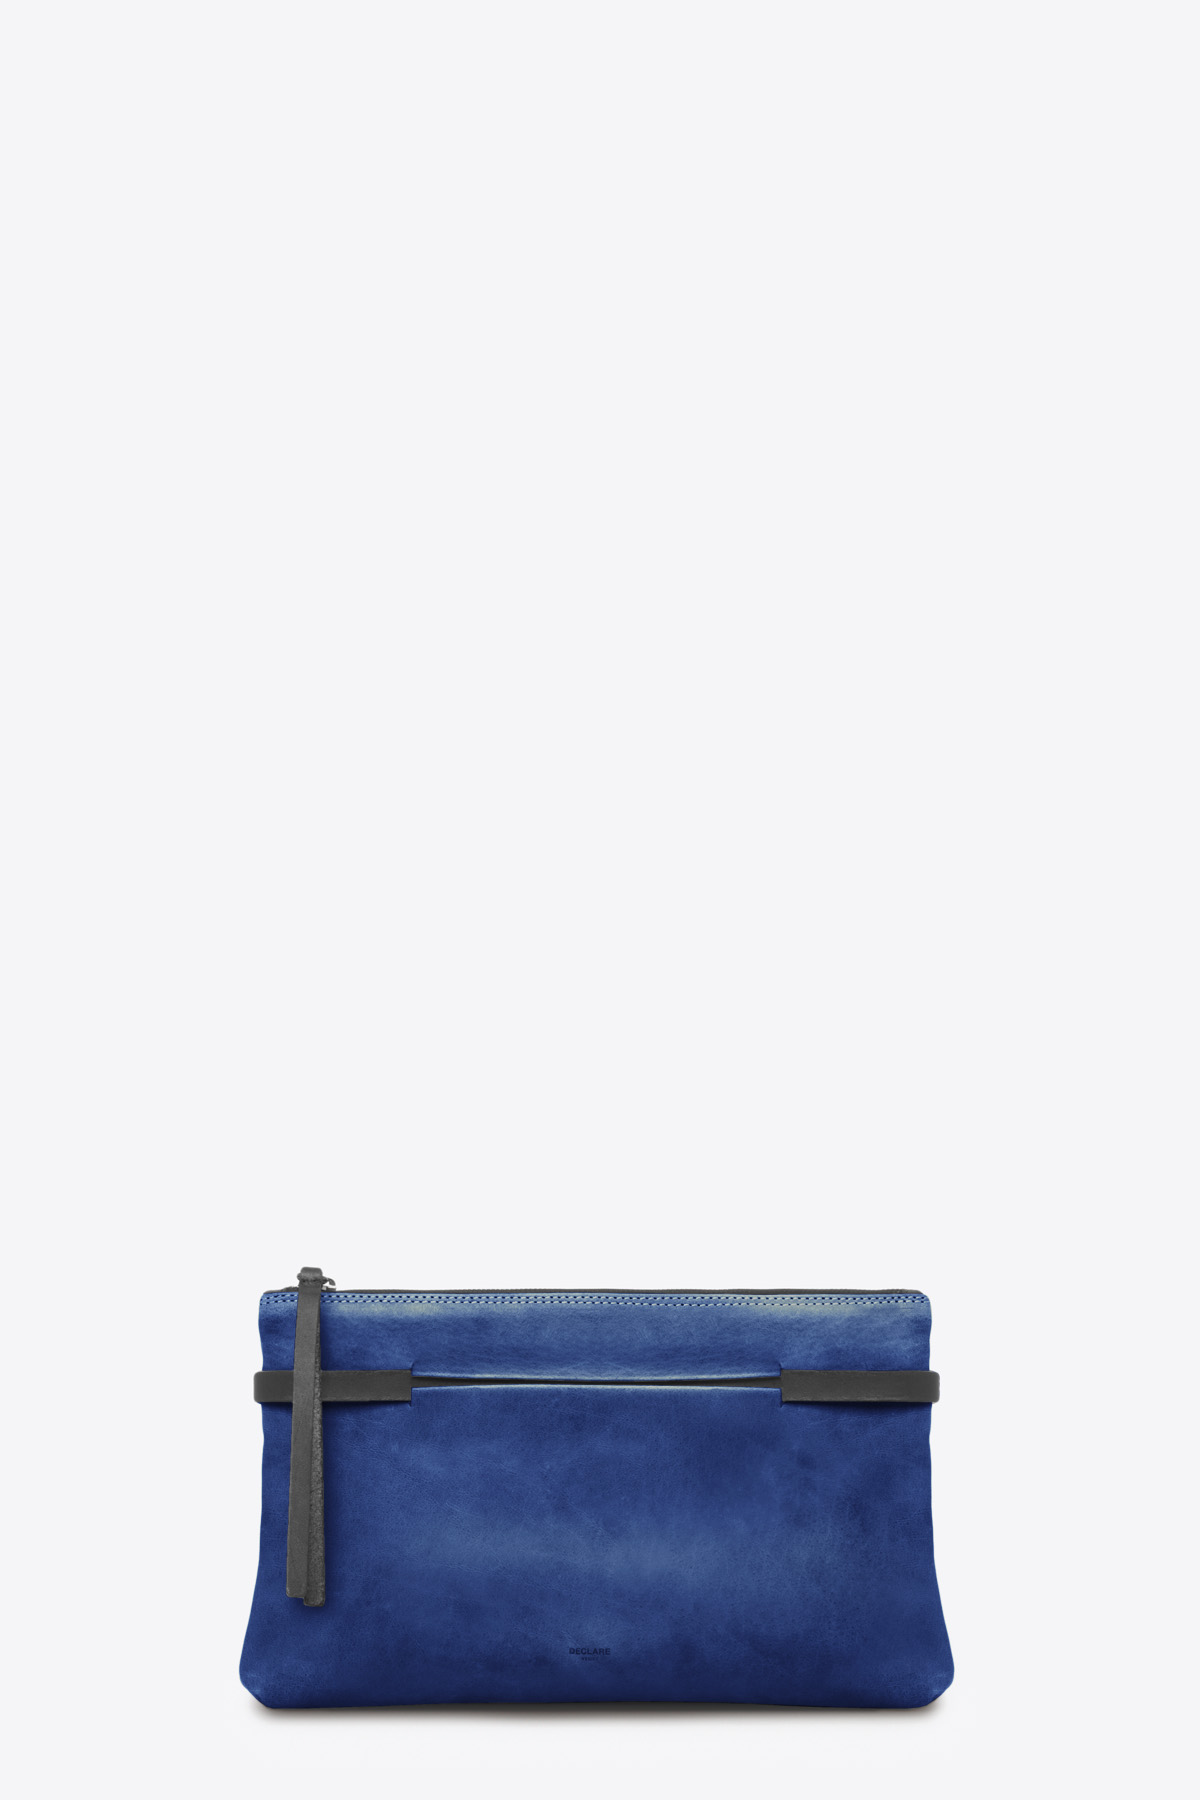 dclr004l-tapeclutch-a20-royalblue-front